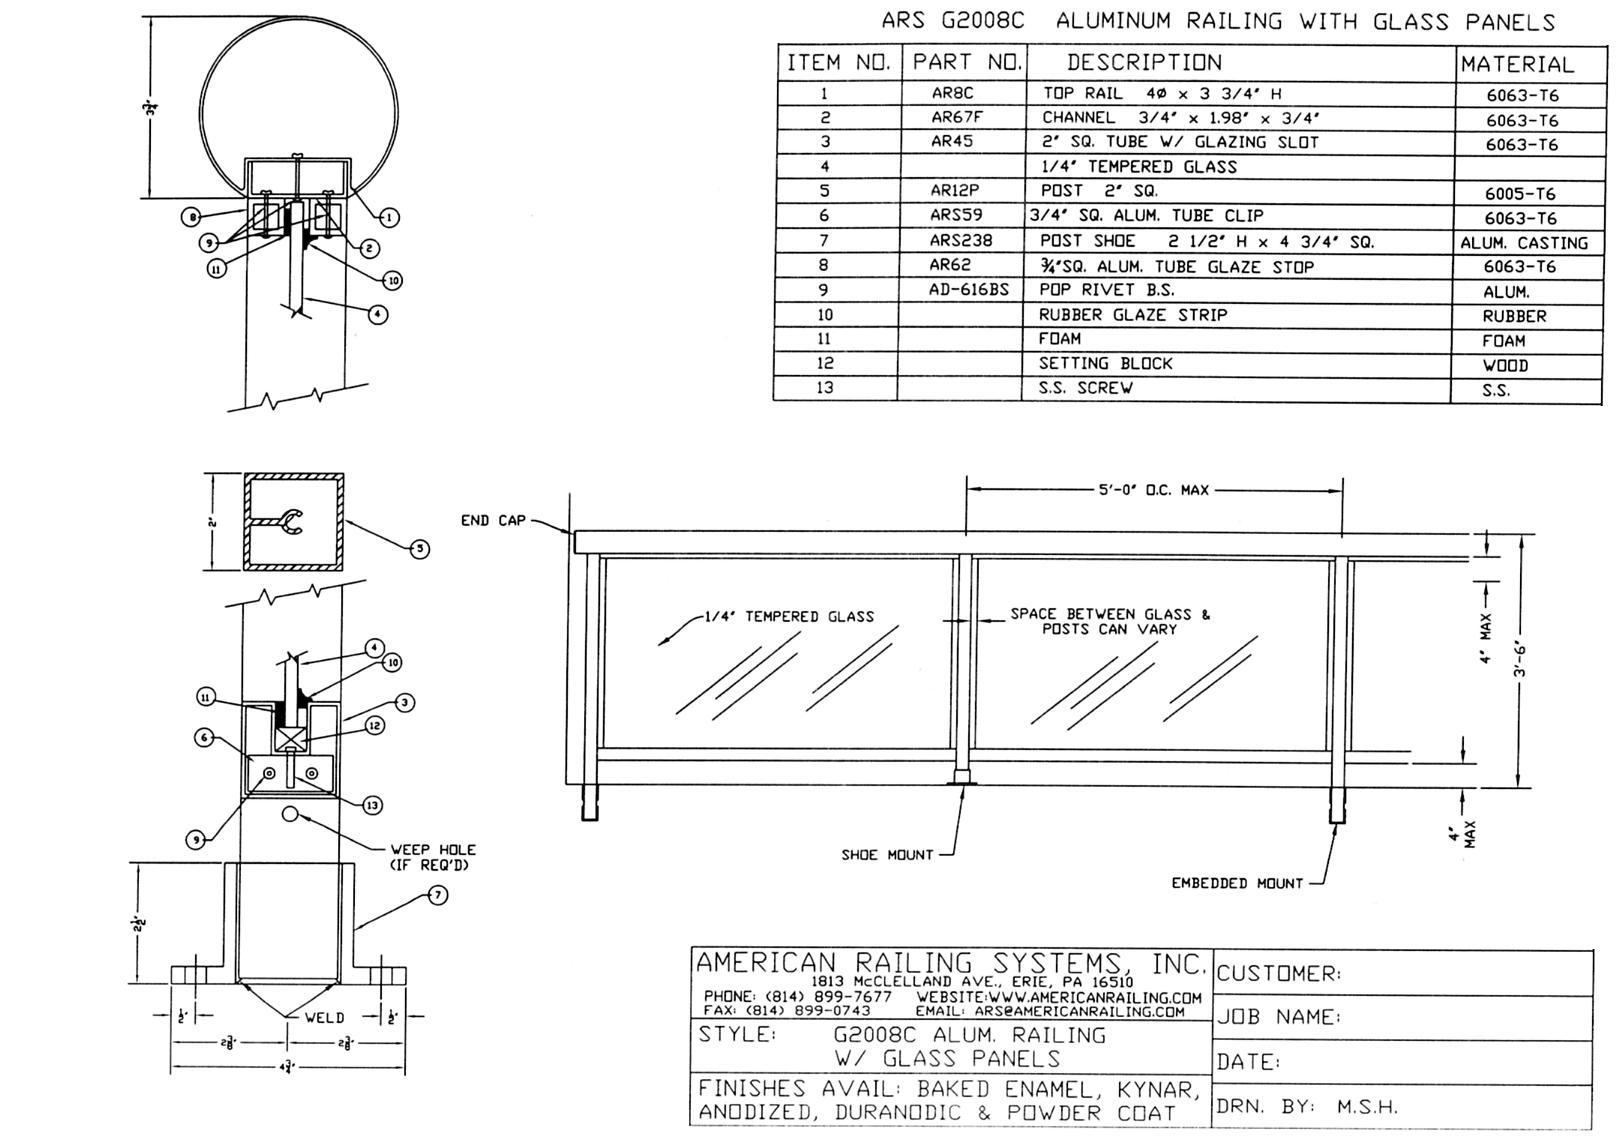 CAD DETAILS - AMERICAN RAILING SYSTEMS, INC